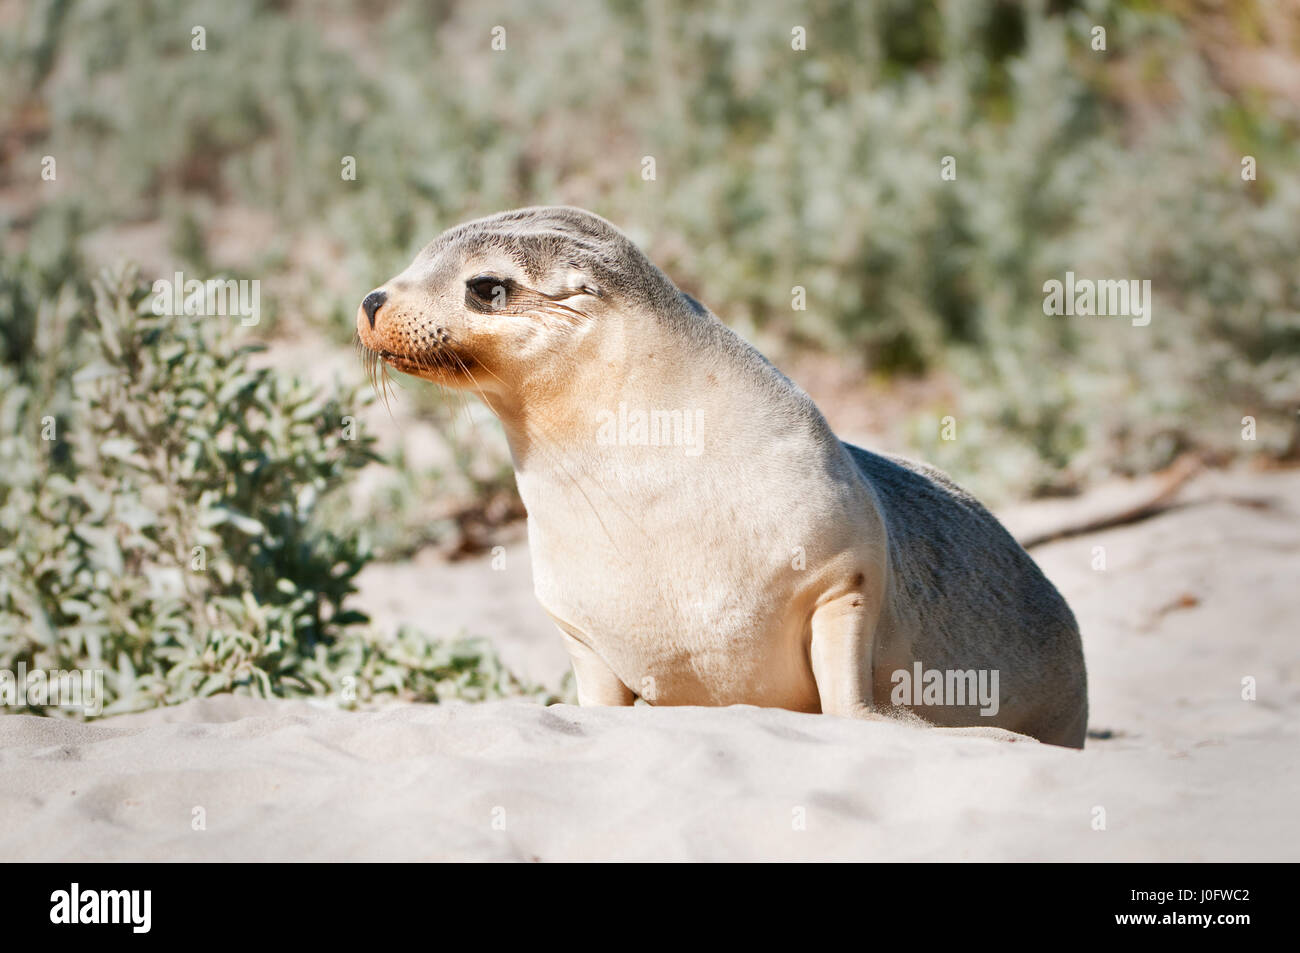 Juvenile Australian Sea-lion curiously looking. Stock Photo